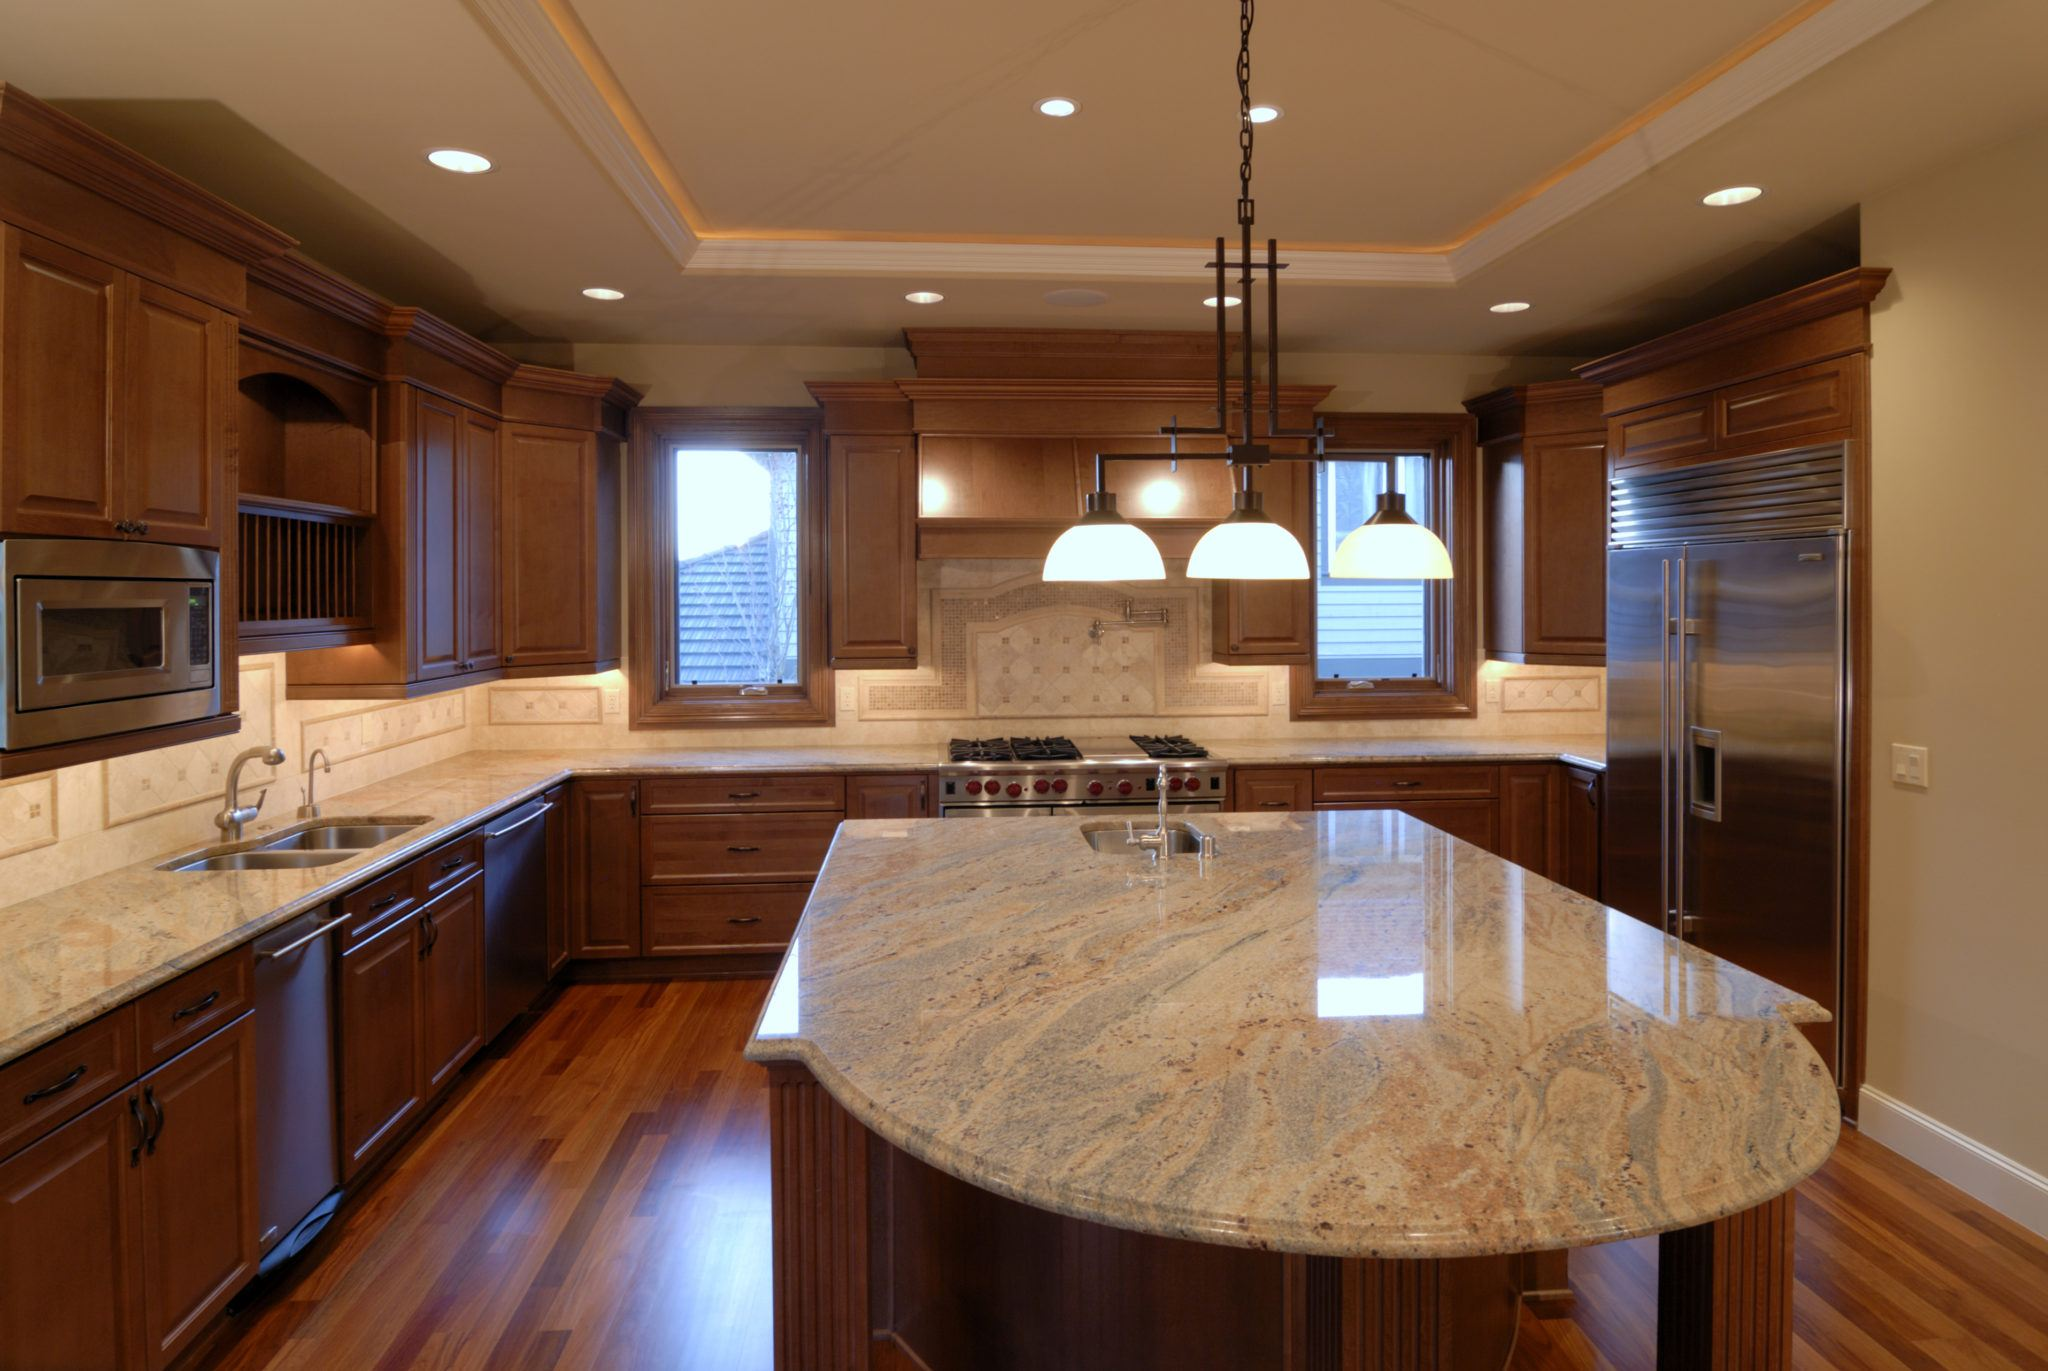 Kitchen Design Style Tips Only The Pros Know